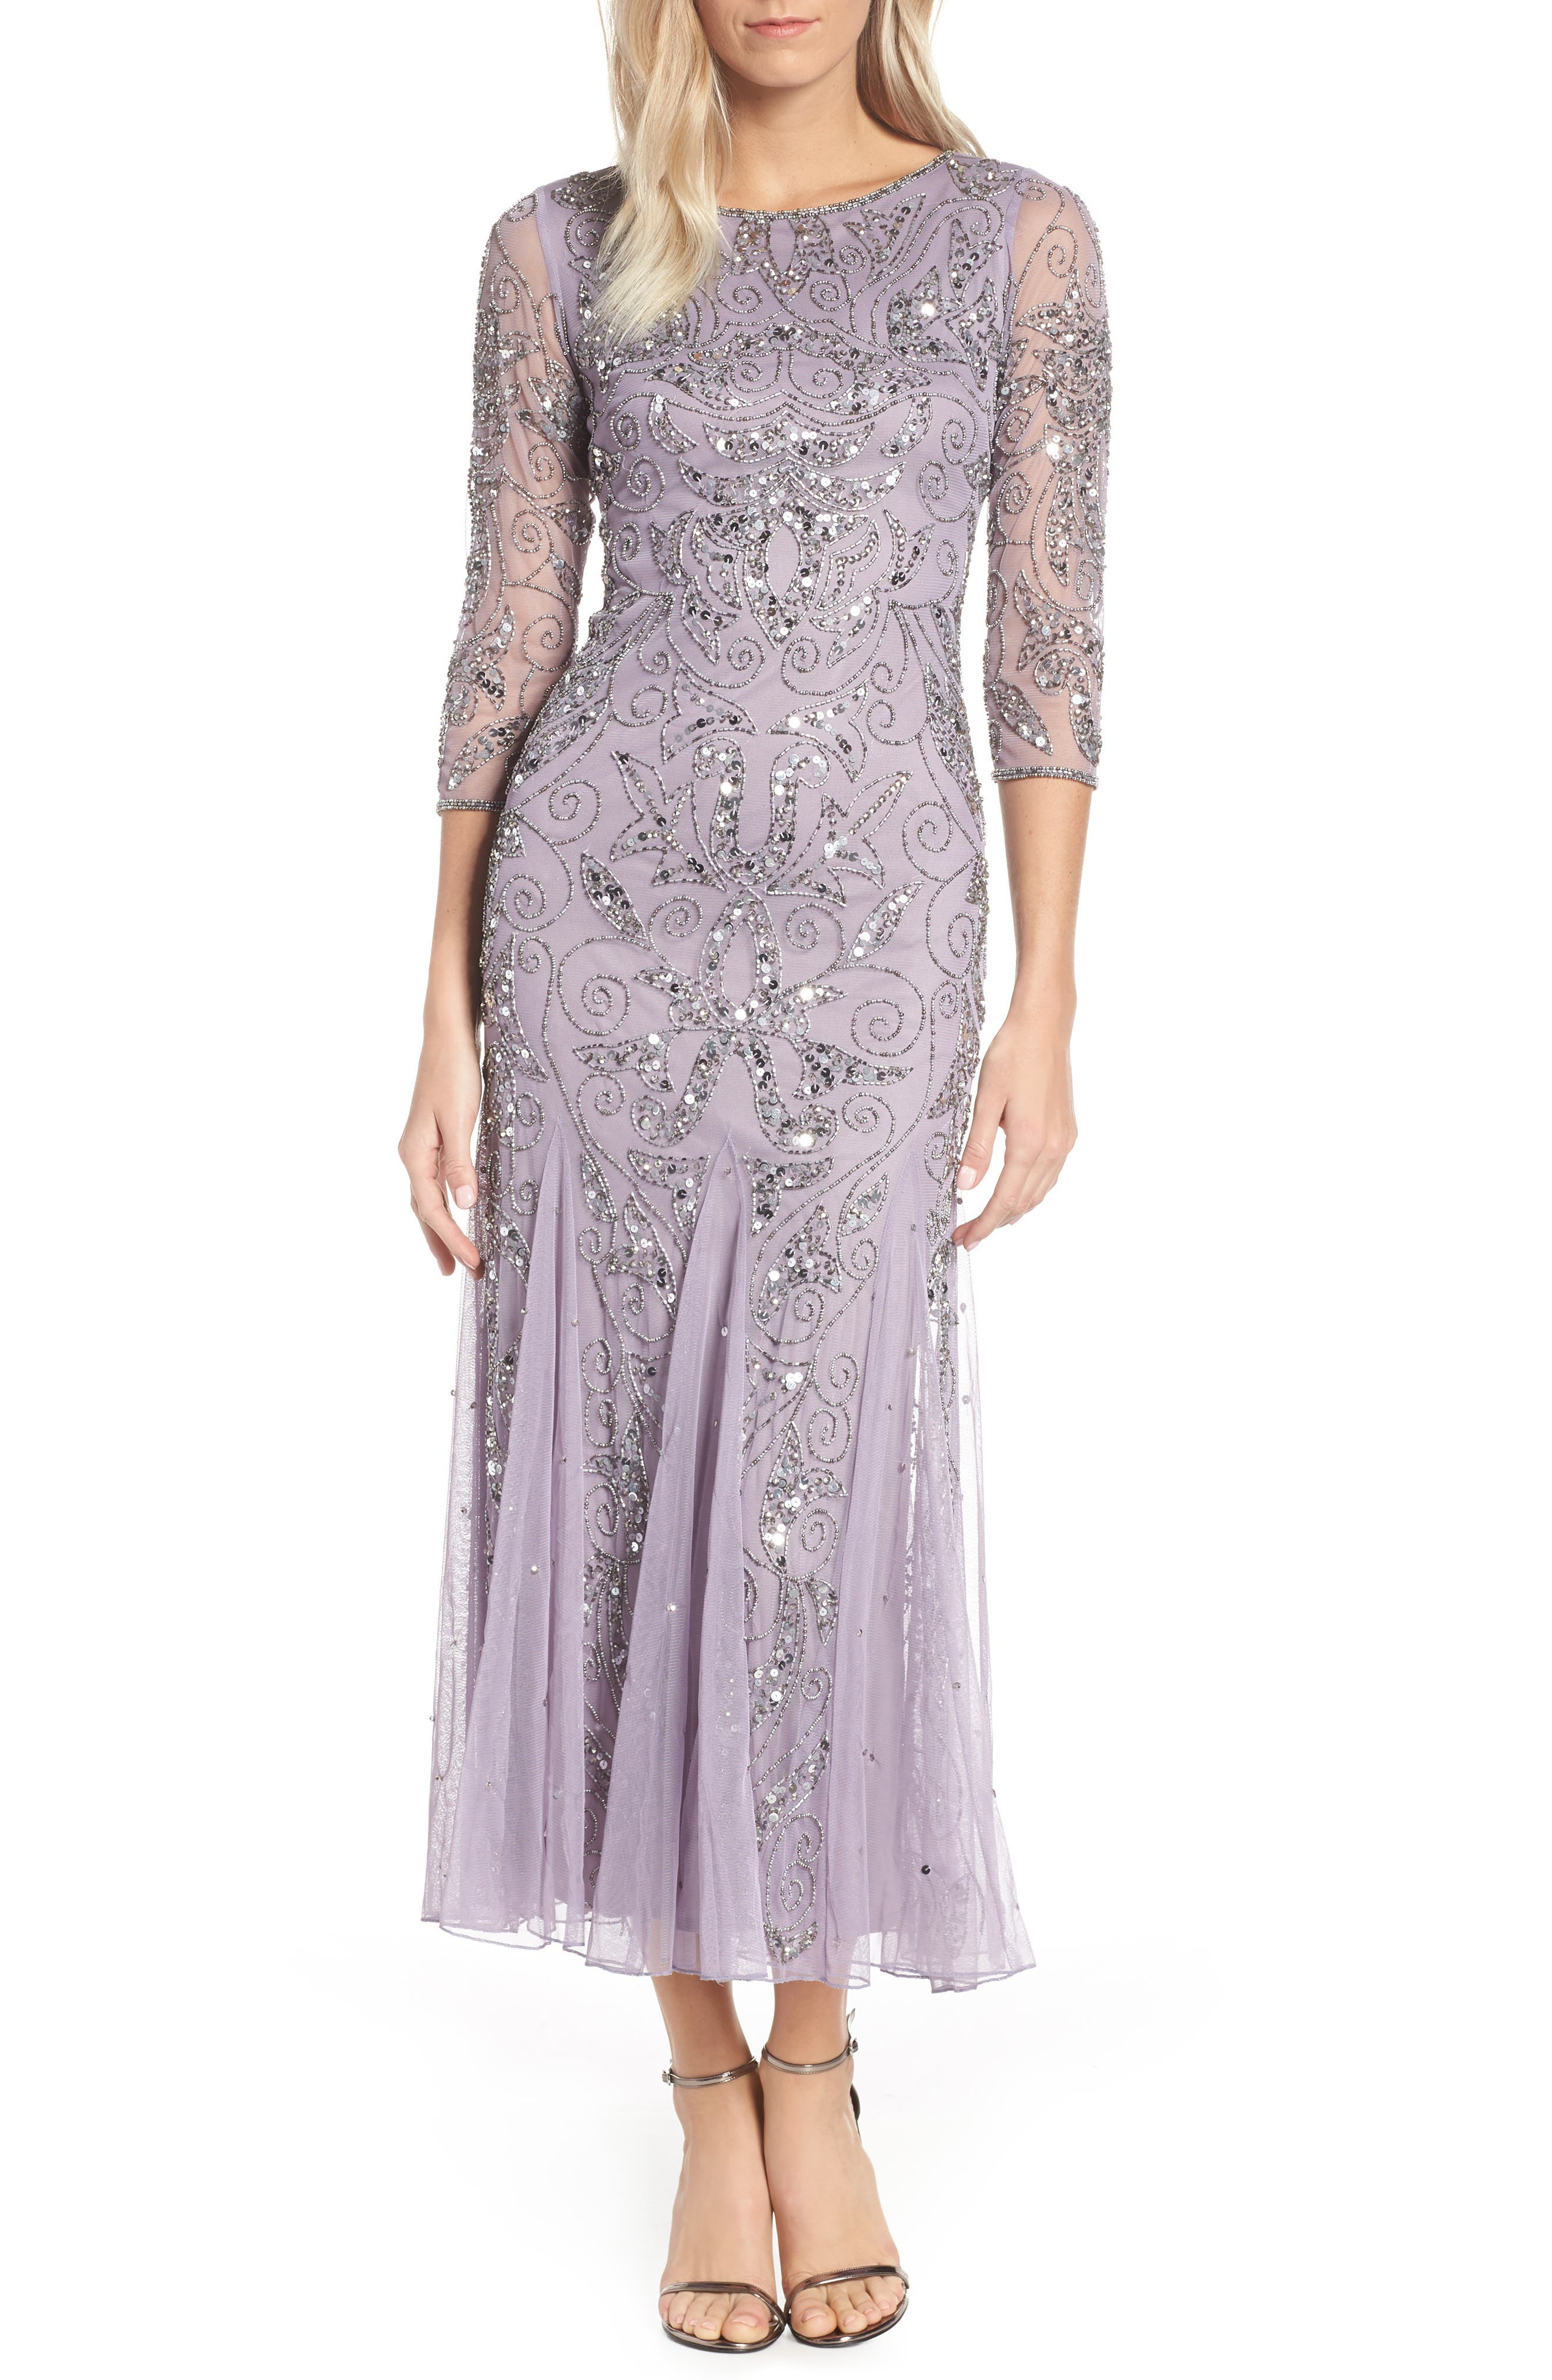 1930s Dresses | 30s Art Deco Dress Womens Pisarro Nights Embellished Mesh Gown Size 10 - Purple $218.00 AT vintagedancer.com